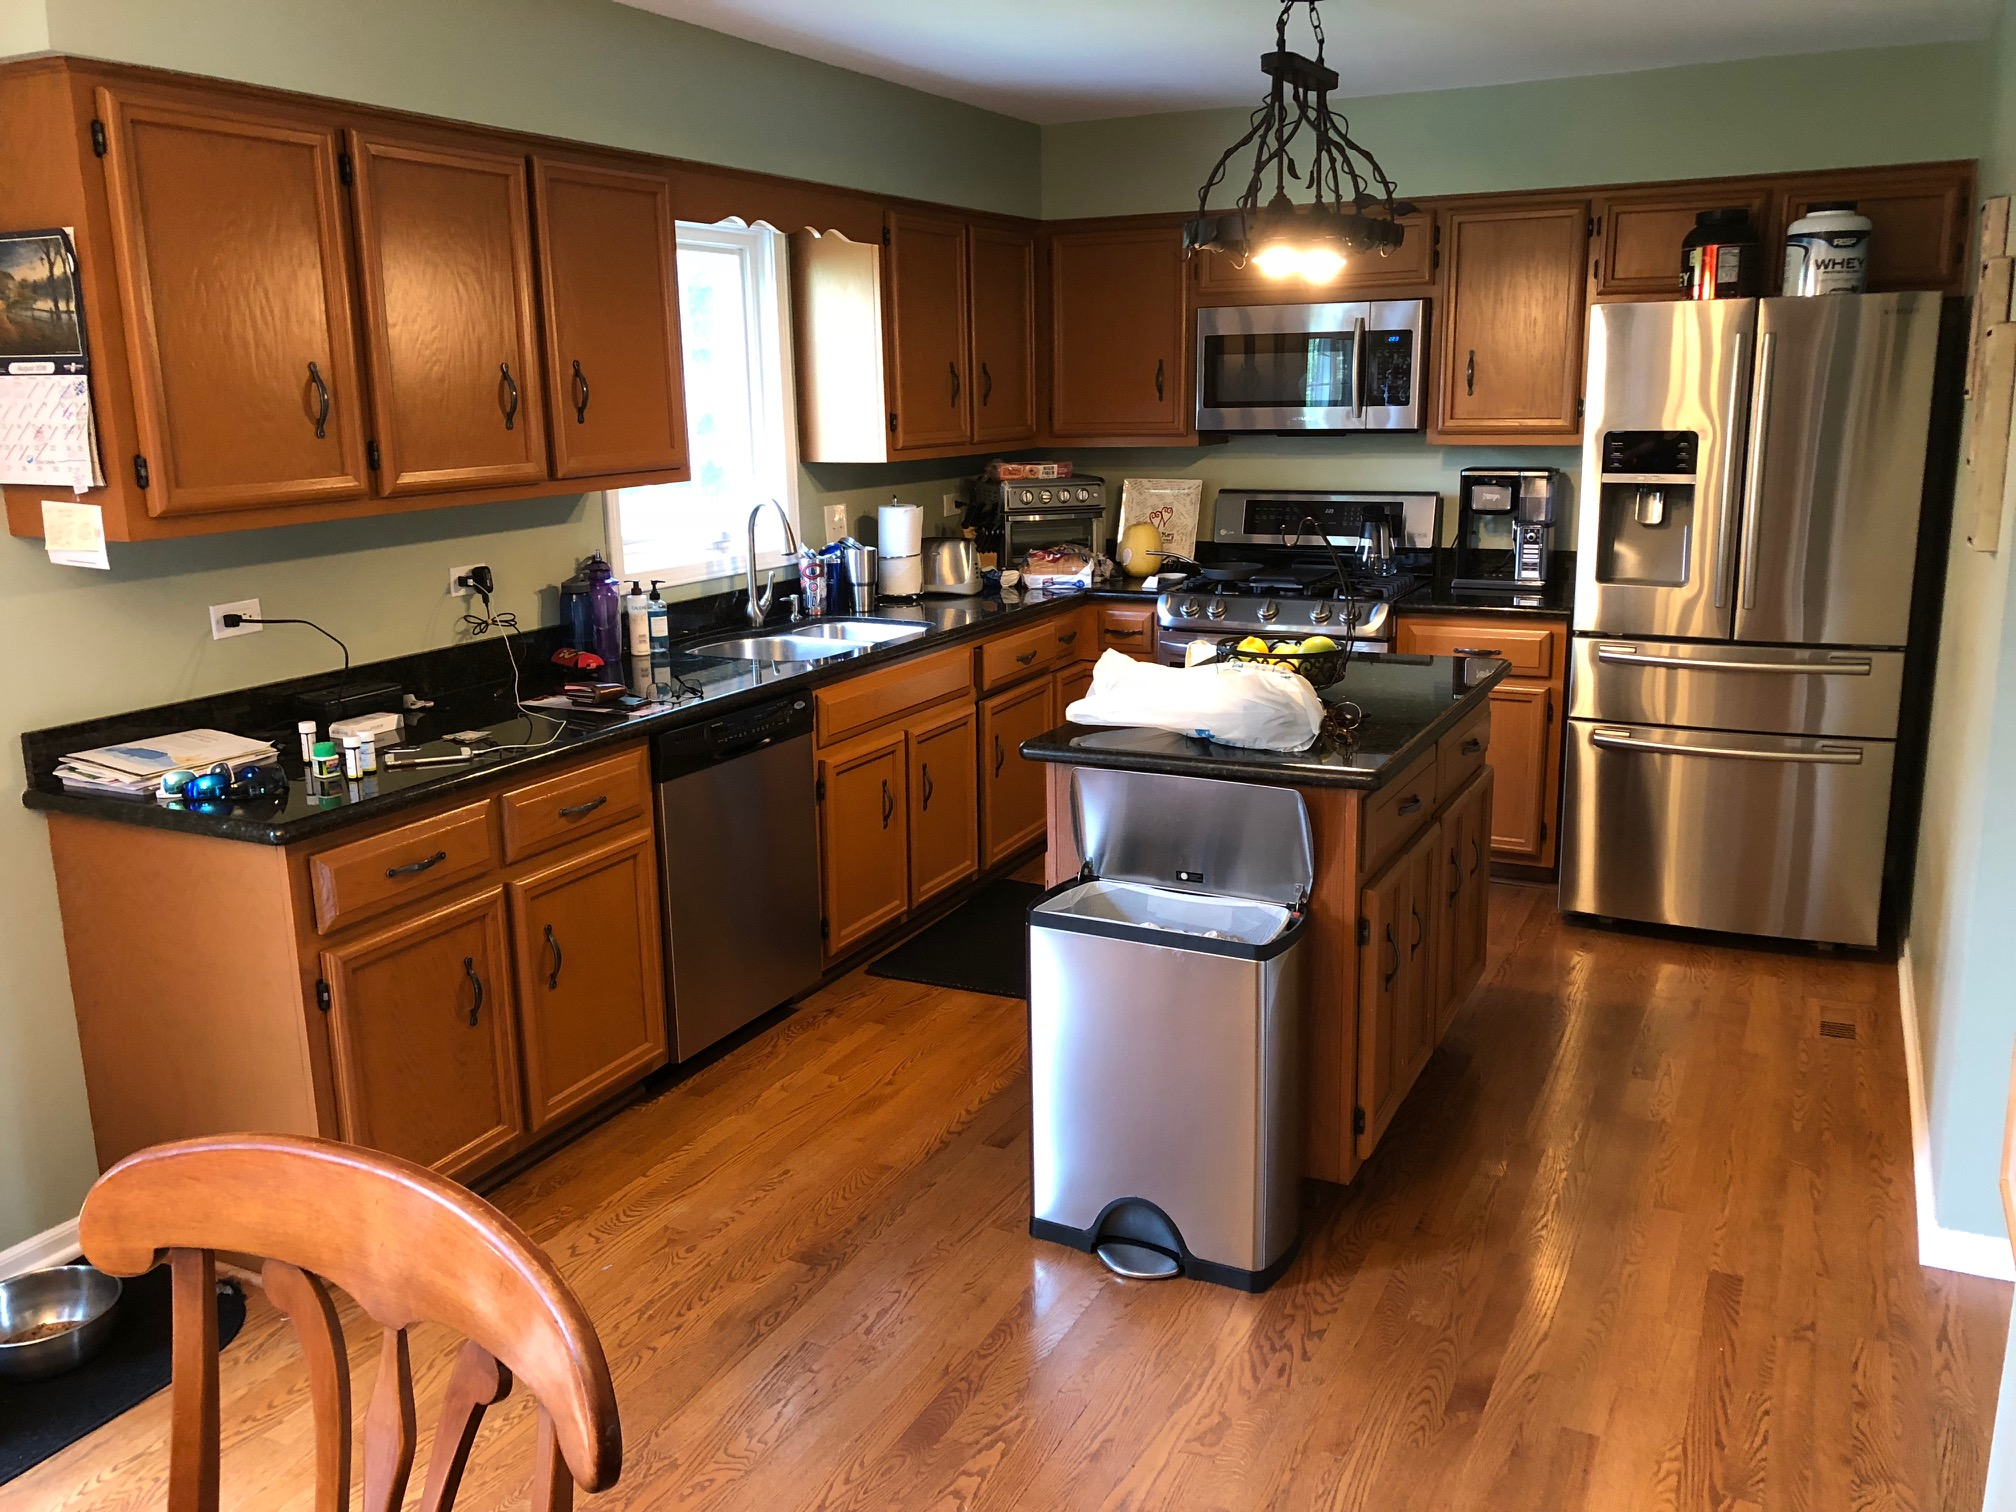 BEFORE - dark wood, cabinets, dark counters, outdated knobs and pulls, outdated light fixtures, painted backsplash